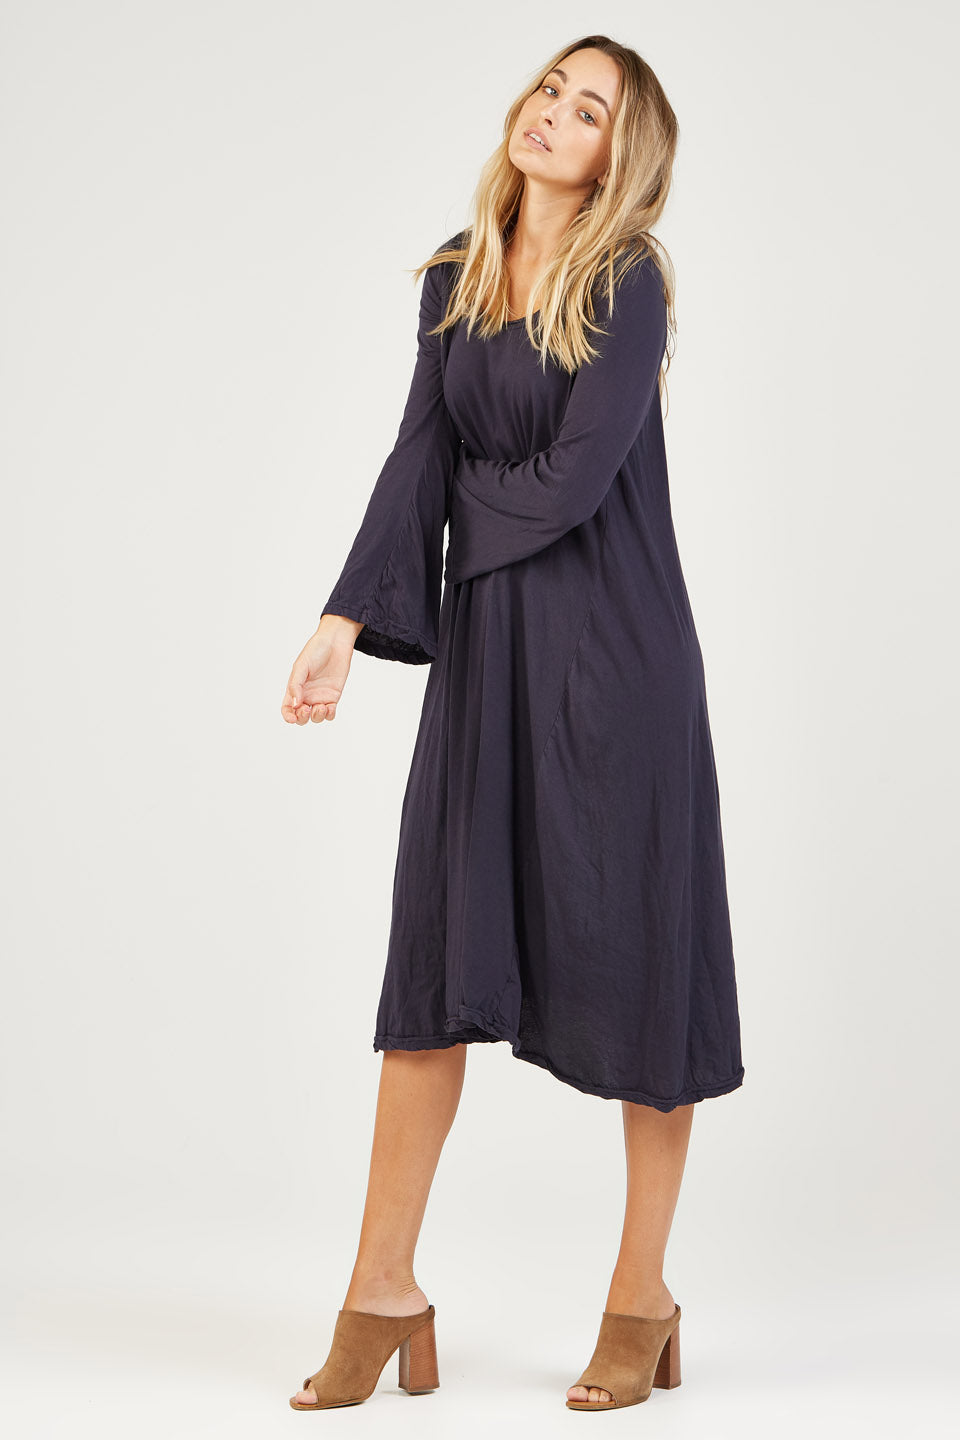 BELLA DRESS - BLUEY CHARCOAL